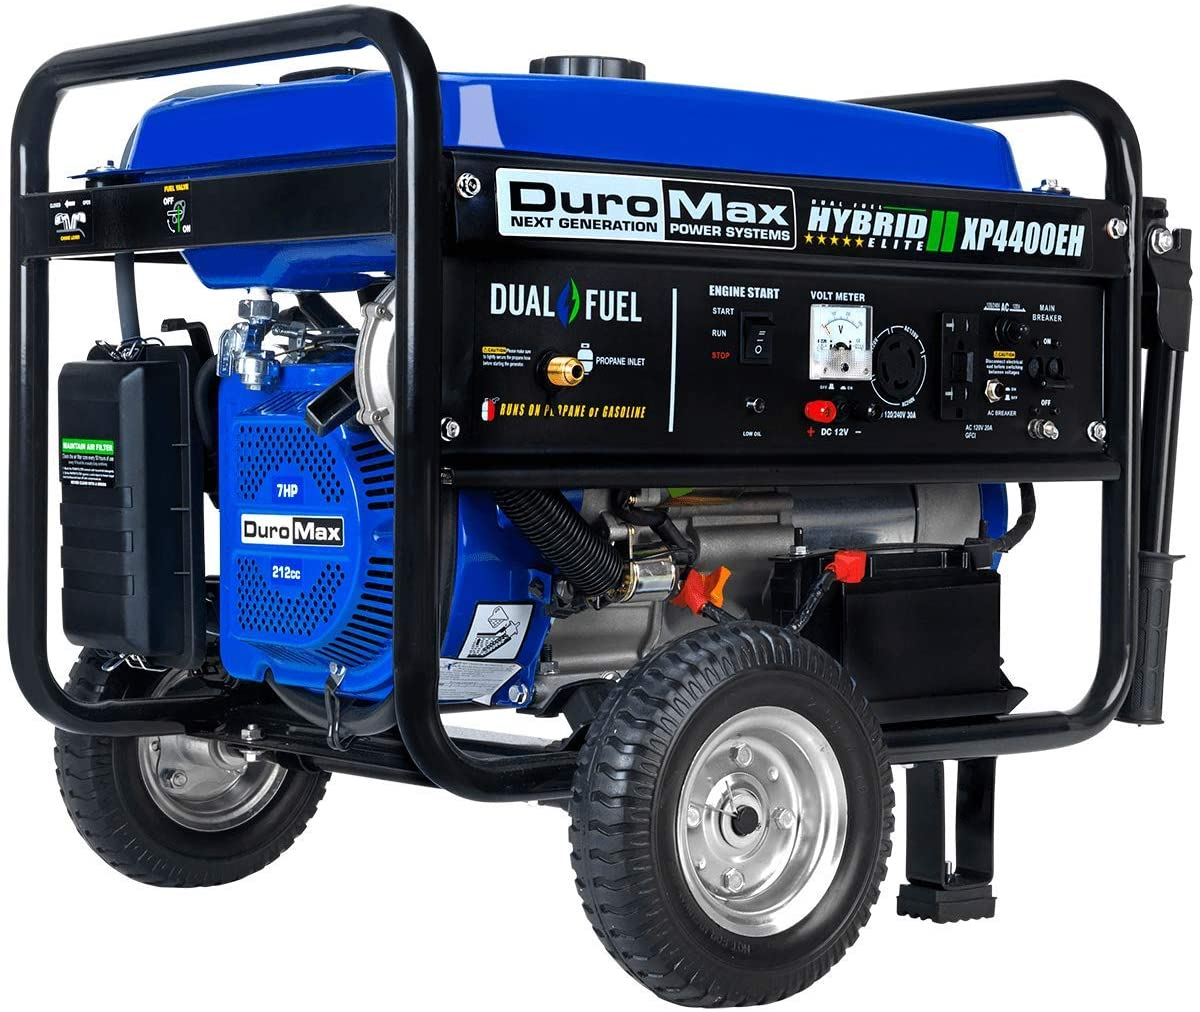 DuroMax XP4400EH Dual Fuel Portable Generator-4400 Watt Gas or Propane Powered Electric Start-Camping & RV Ready, 50 State Approved, Blue and Black